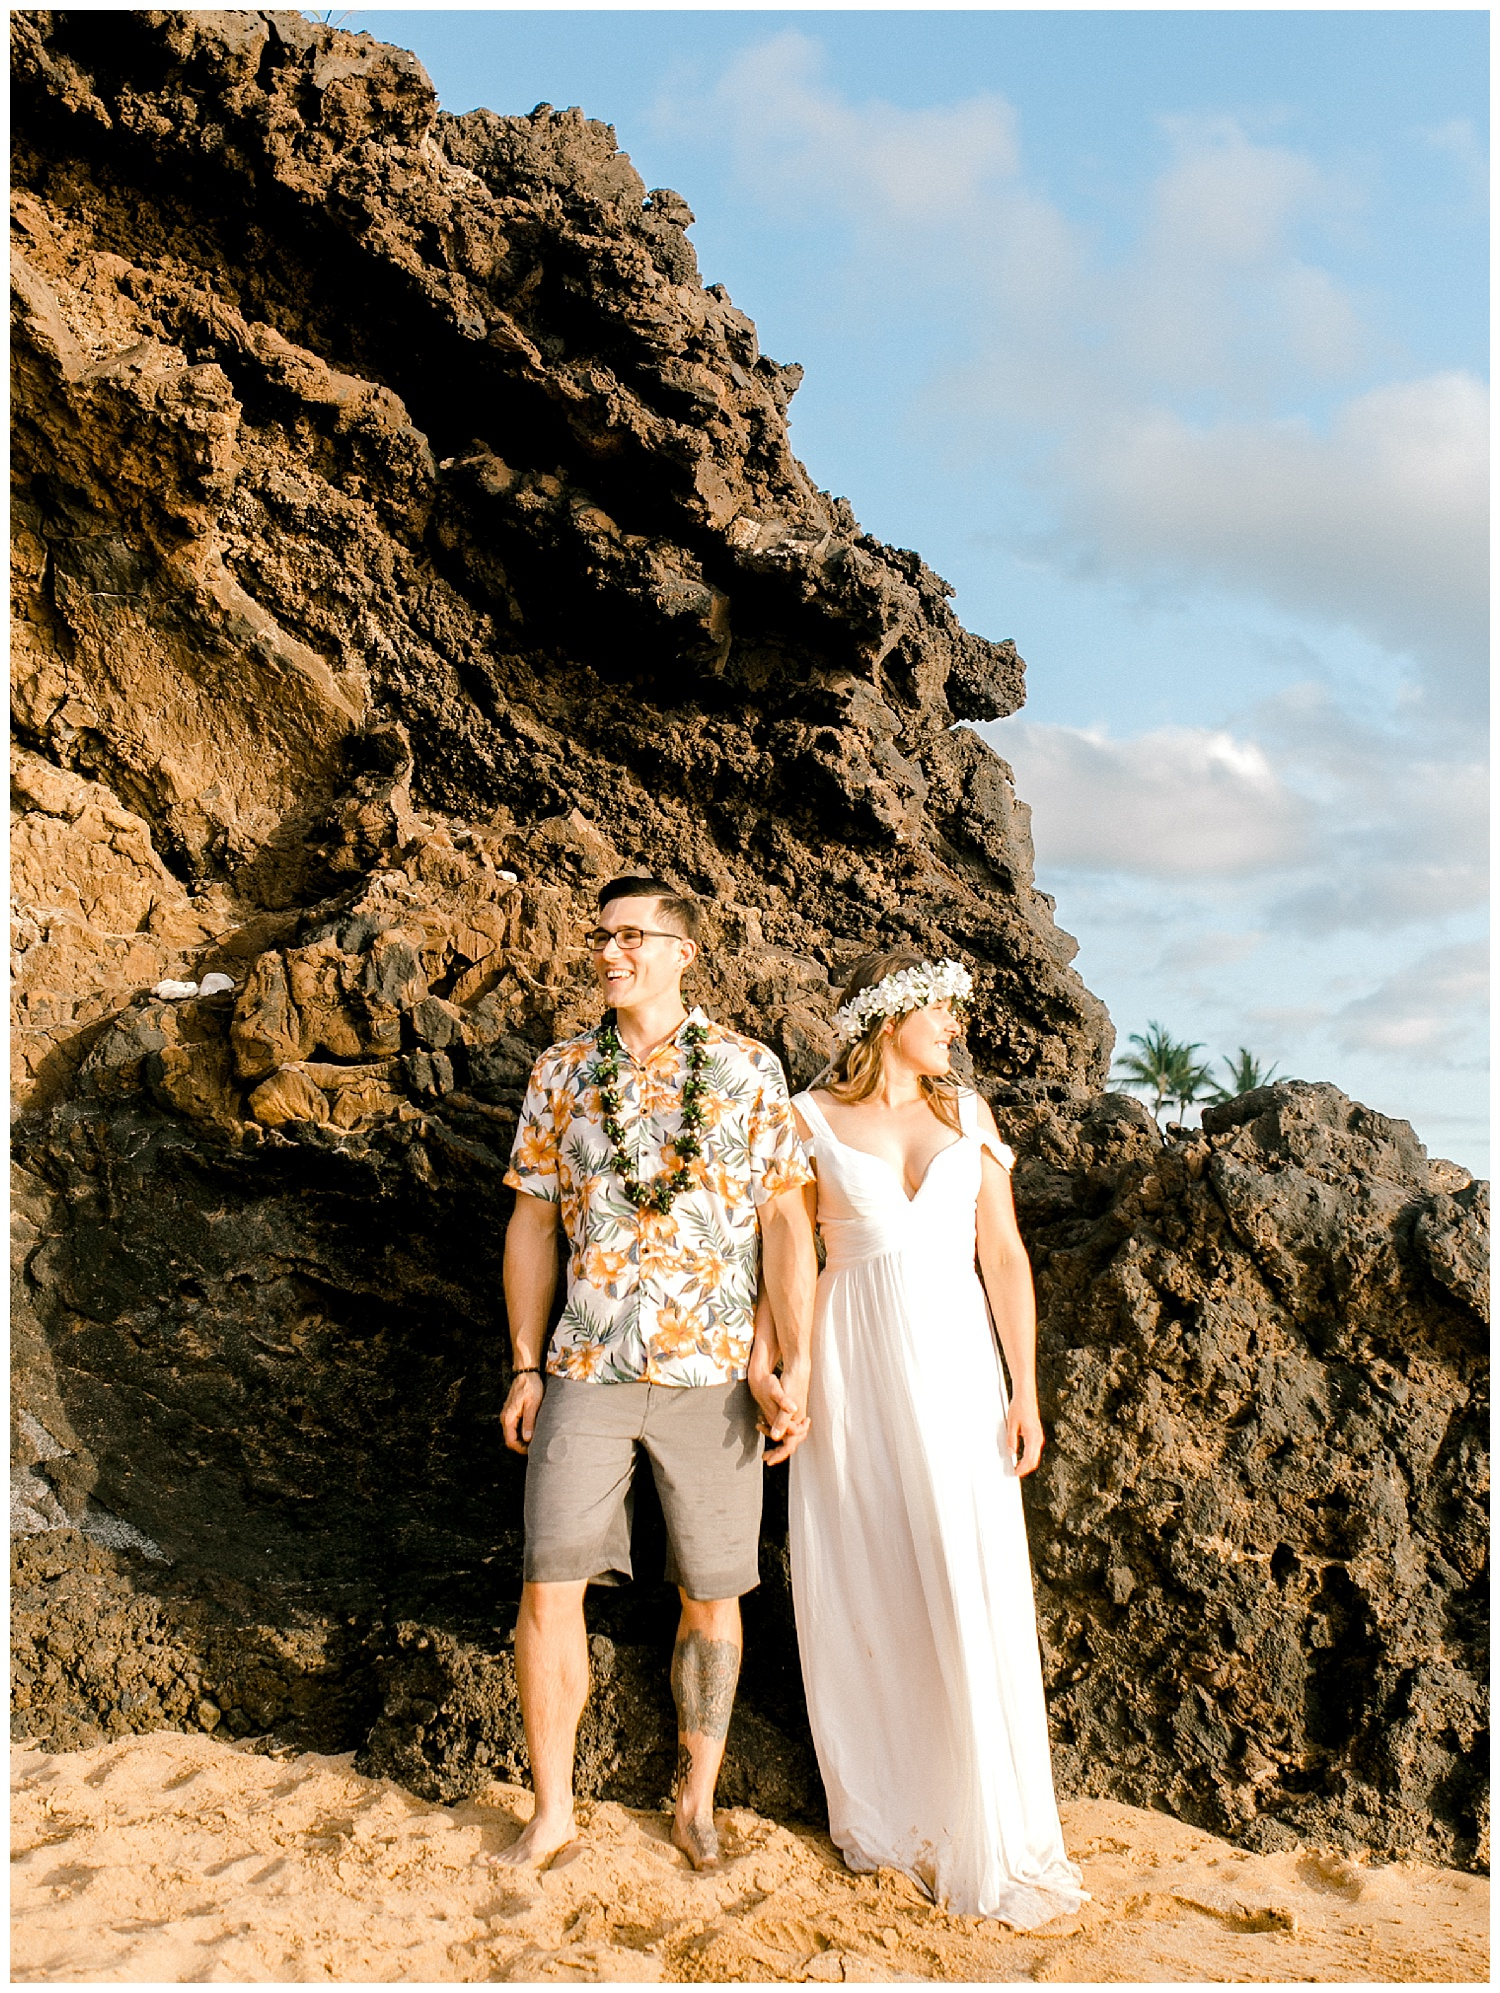 Maui-Elopement-Photography-Paipu-Beach-Maui_0015.jpg